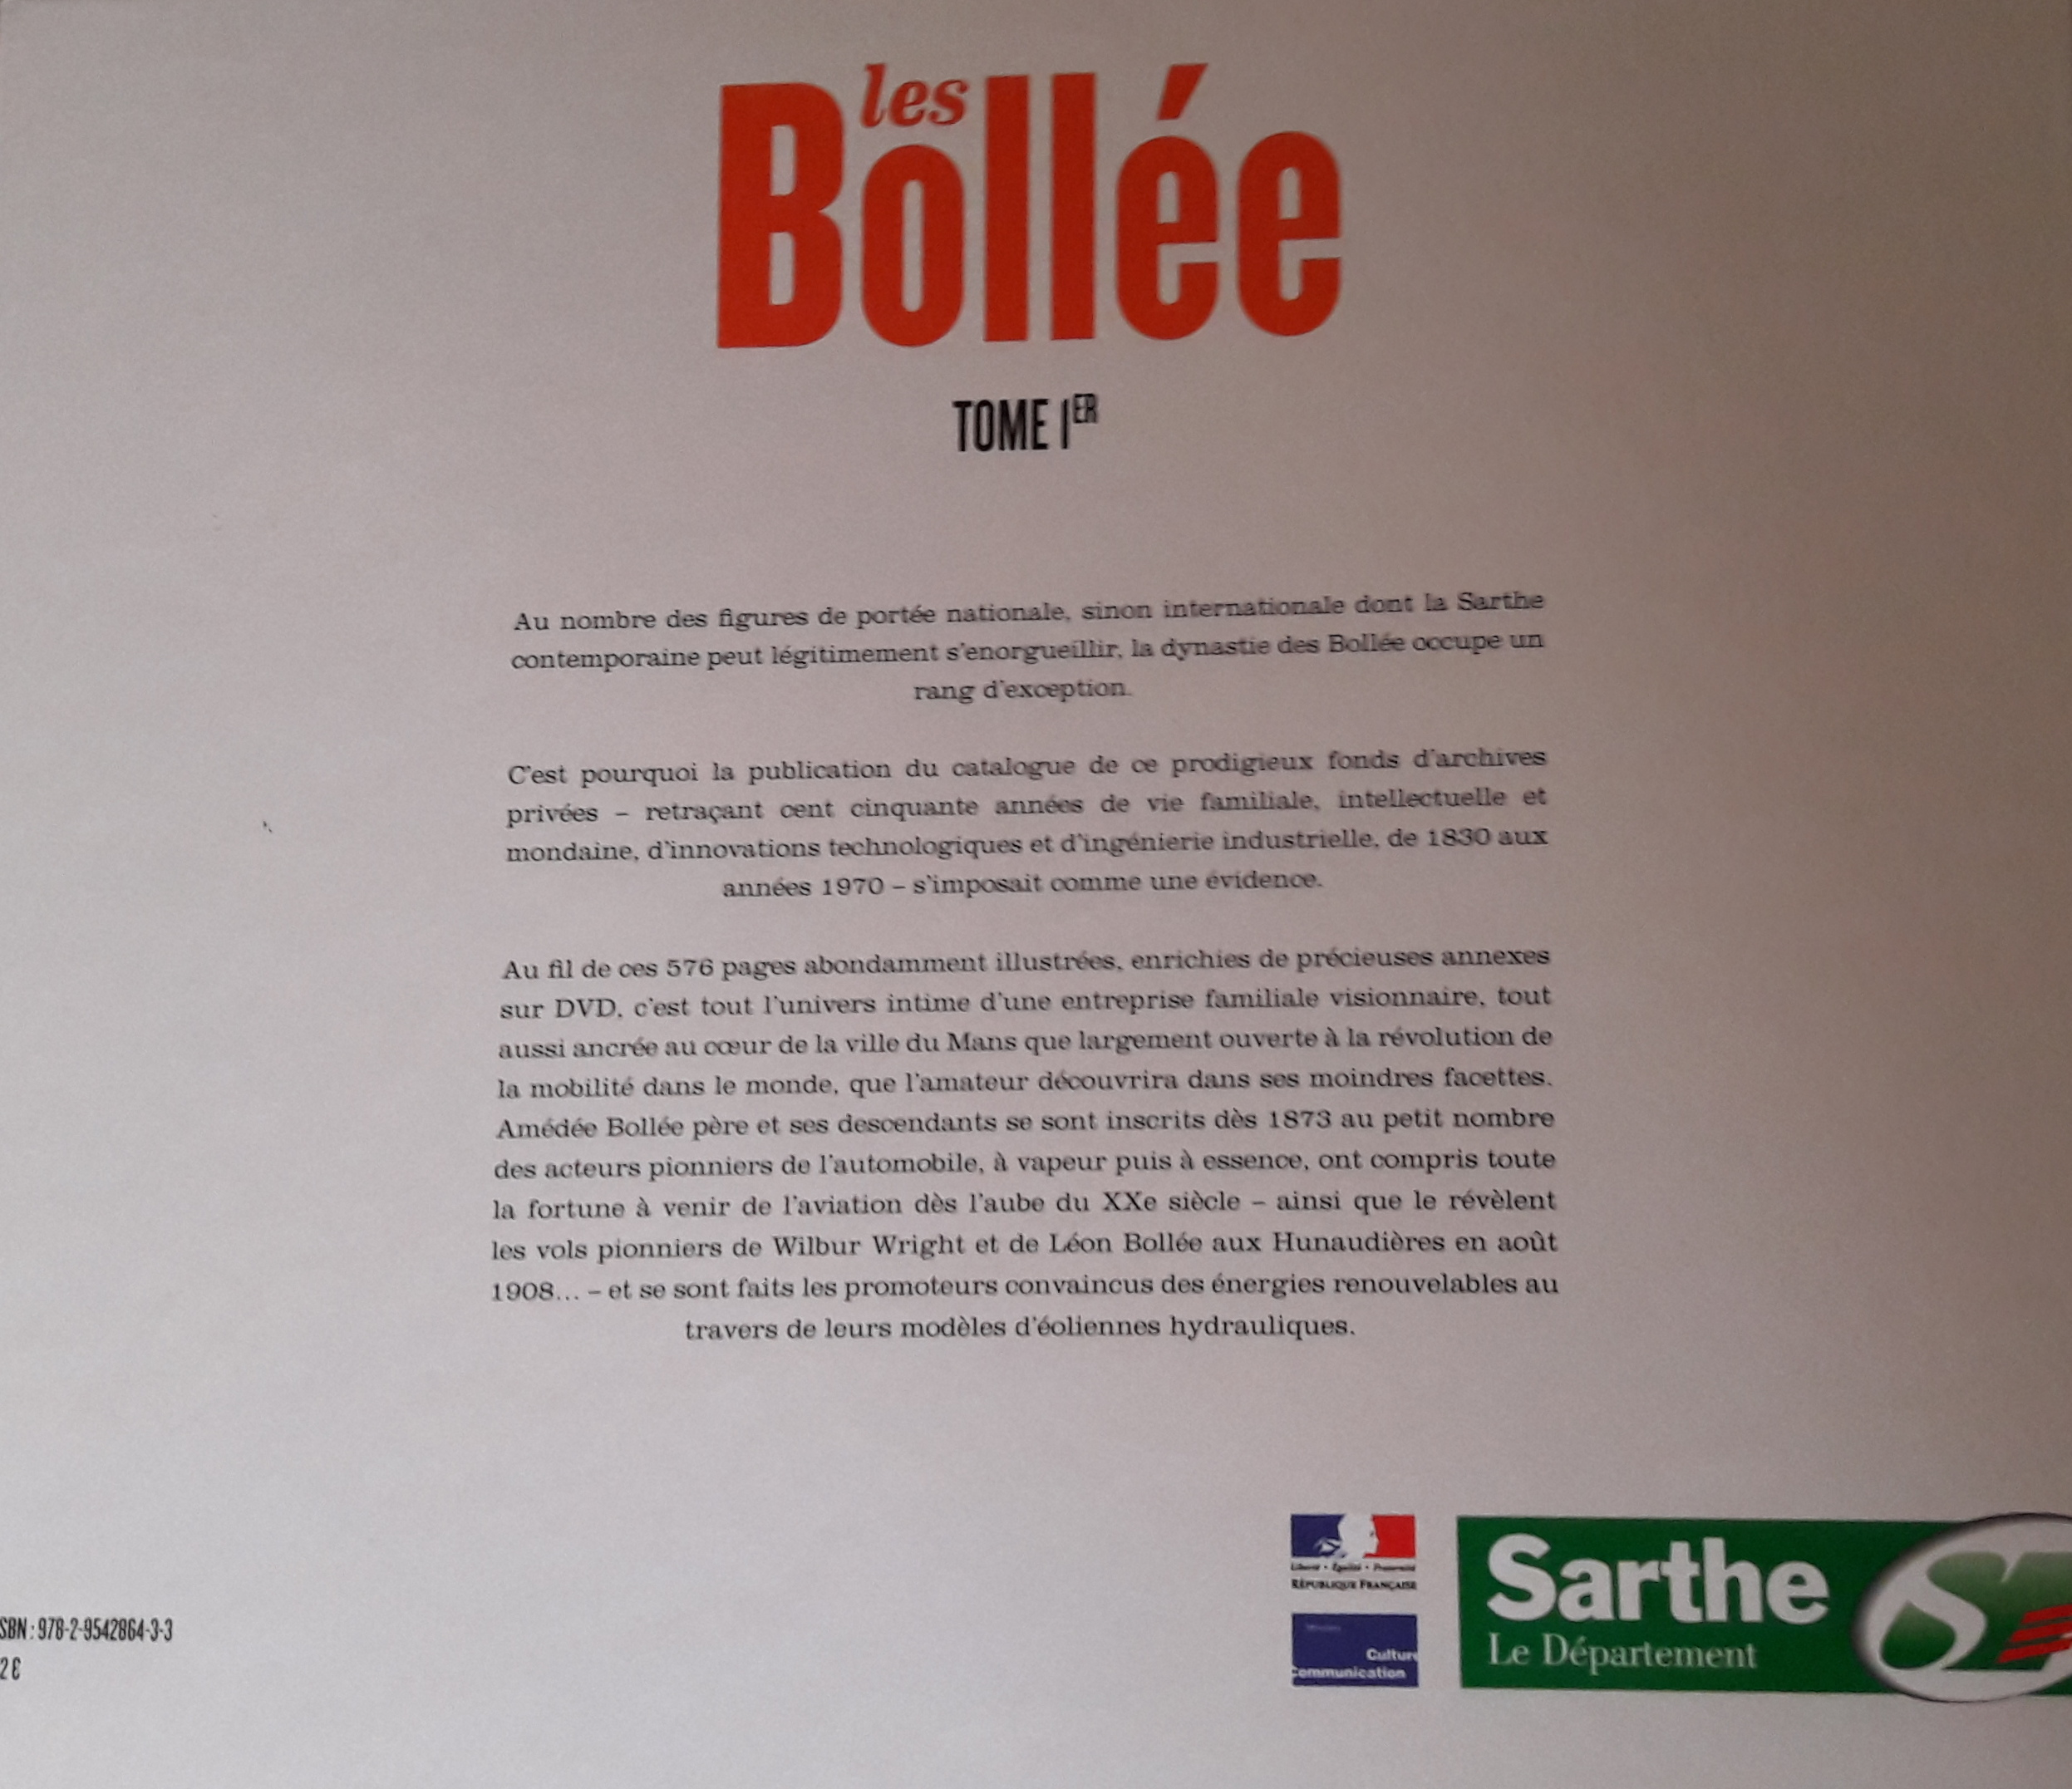 https://static.blog4ever.com/2015/02/794874/Coffret-archives-Les-Boll--e-dos-cote.jpg